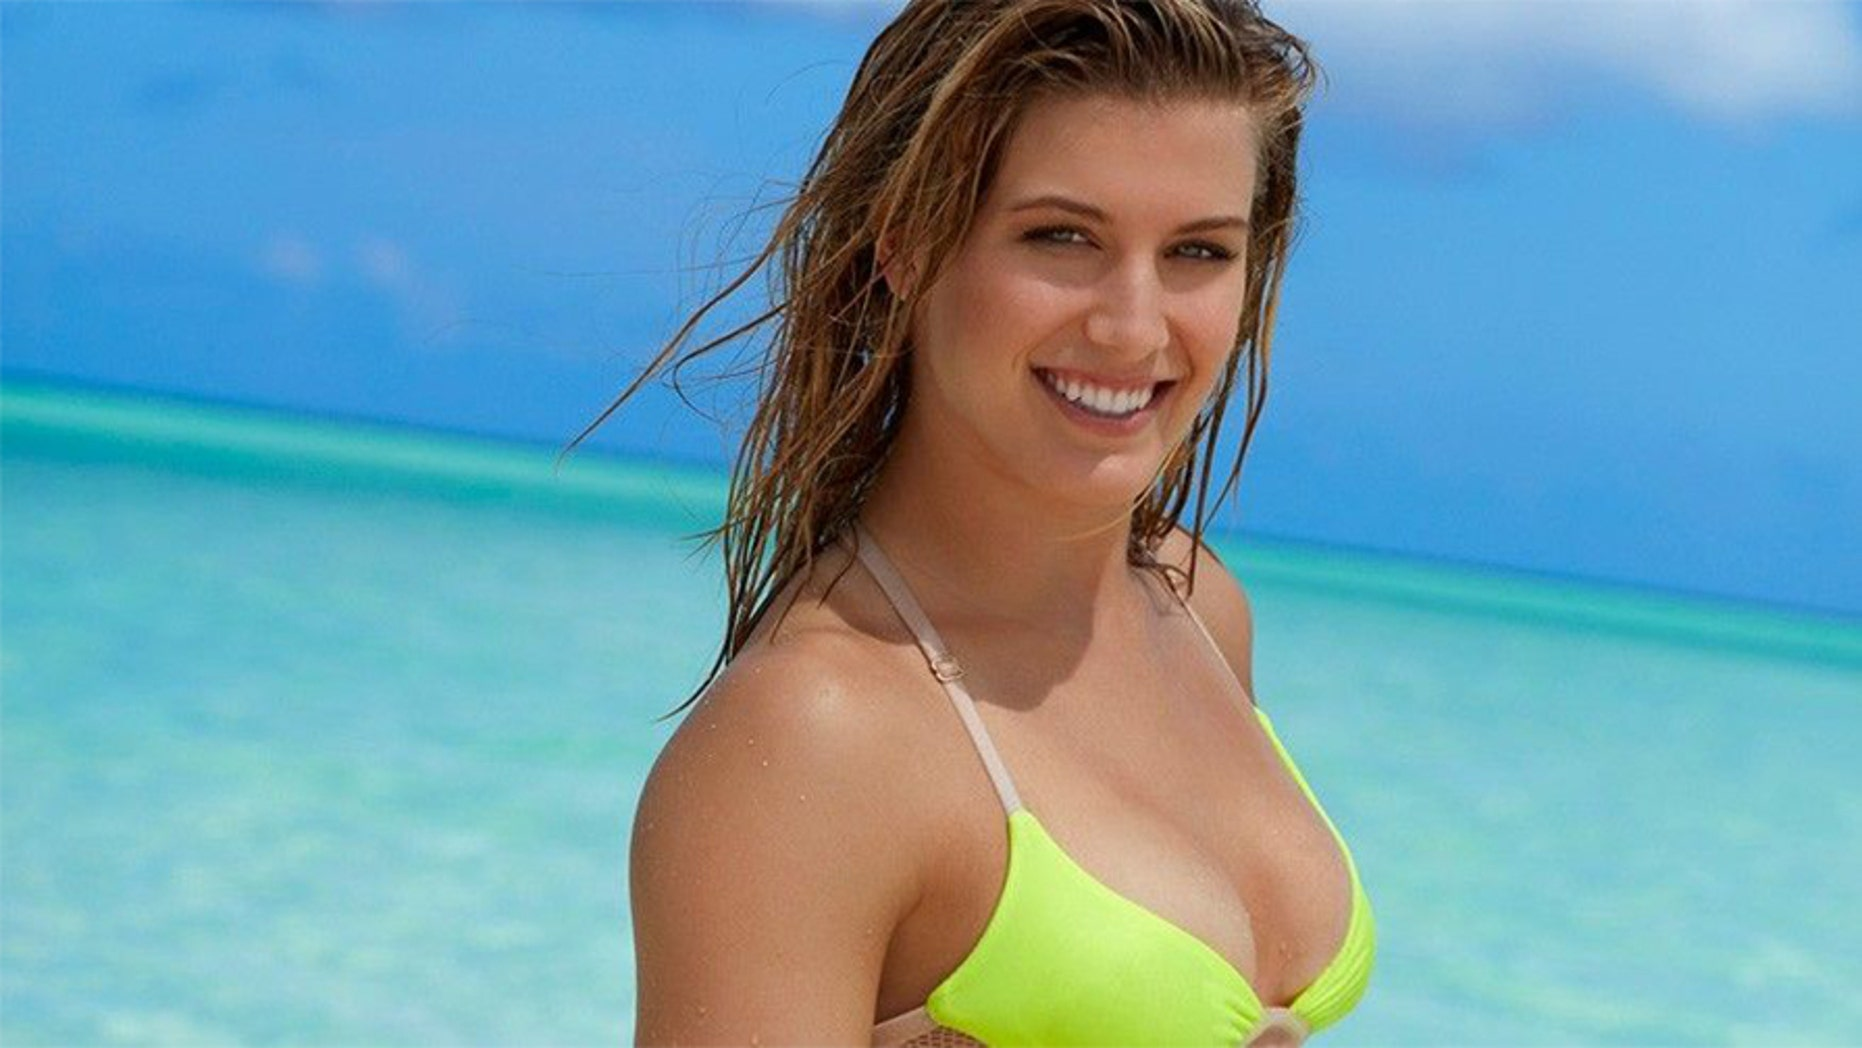 Canadian tennis player Genie Bouchard originally posed for Sports Illustrated Swimsuit in 2017.